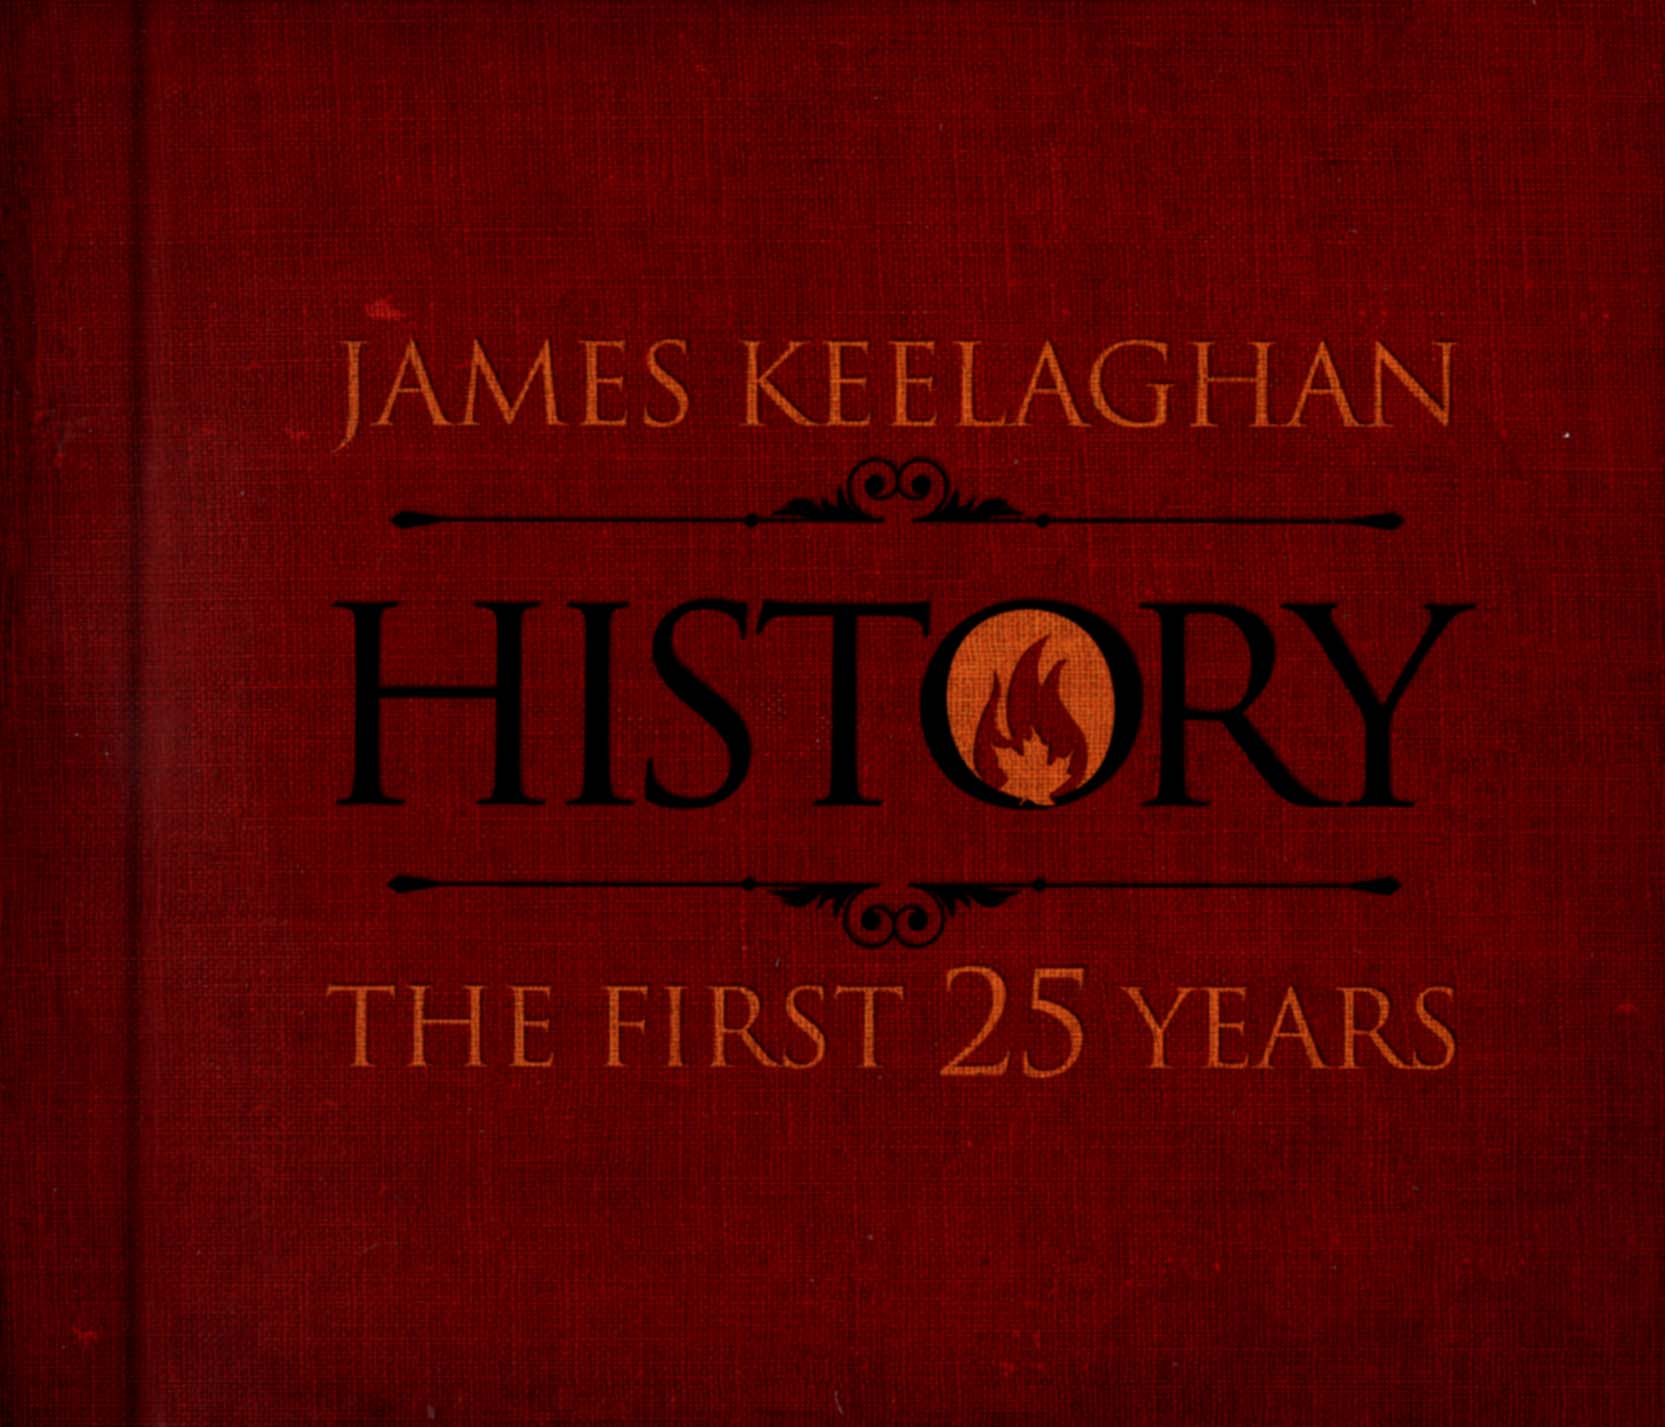 James Keelaghan: History - The First 25 Years